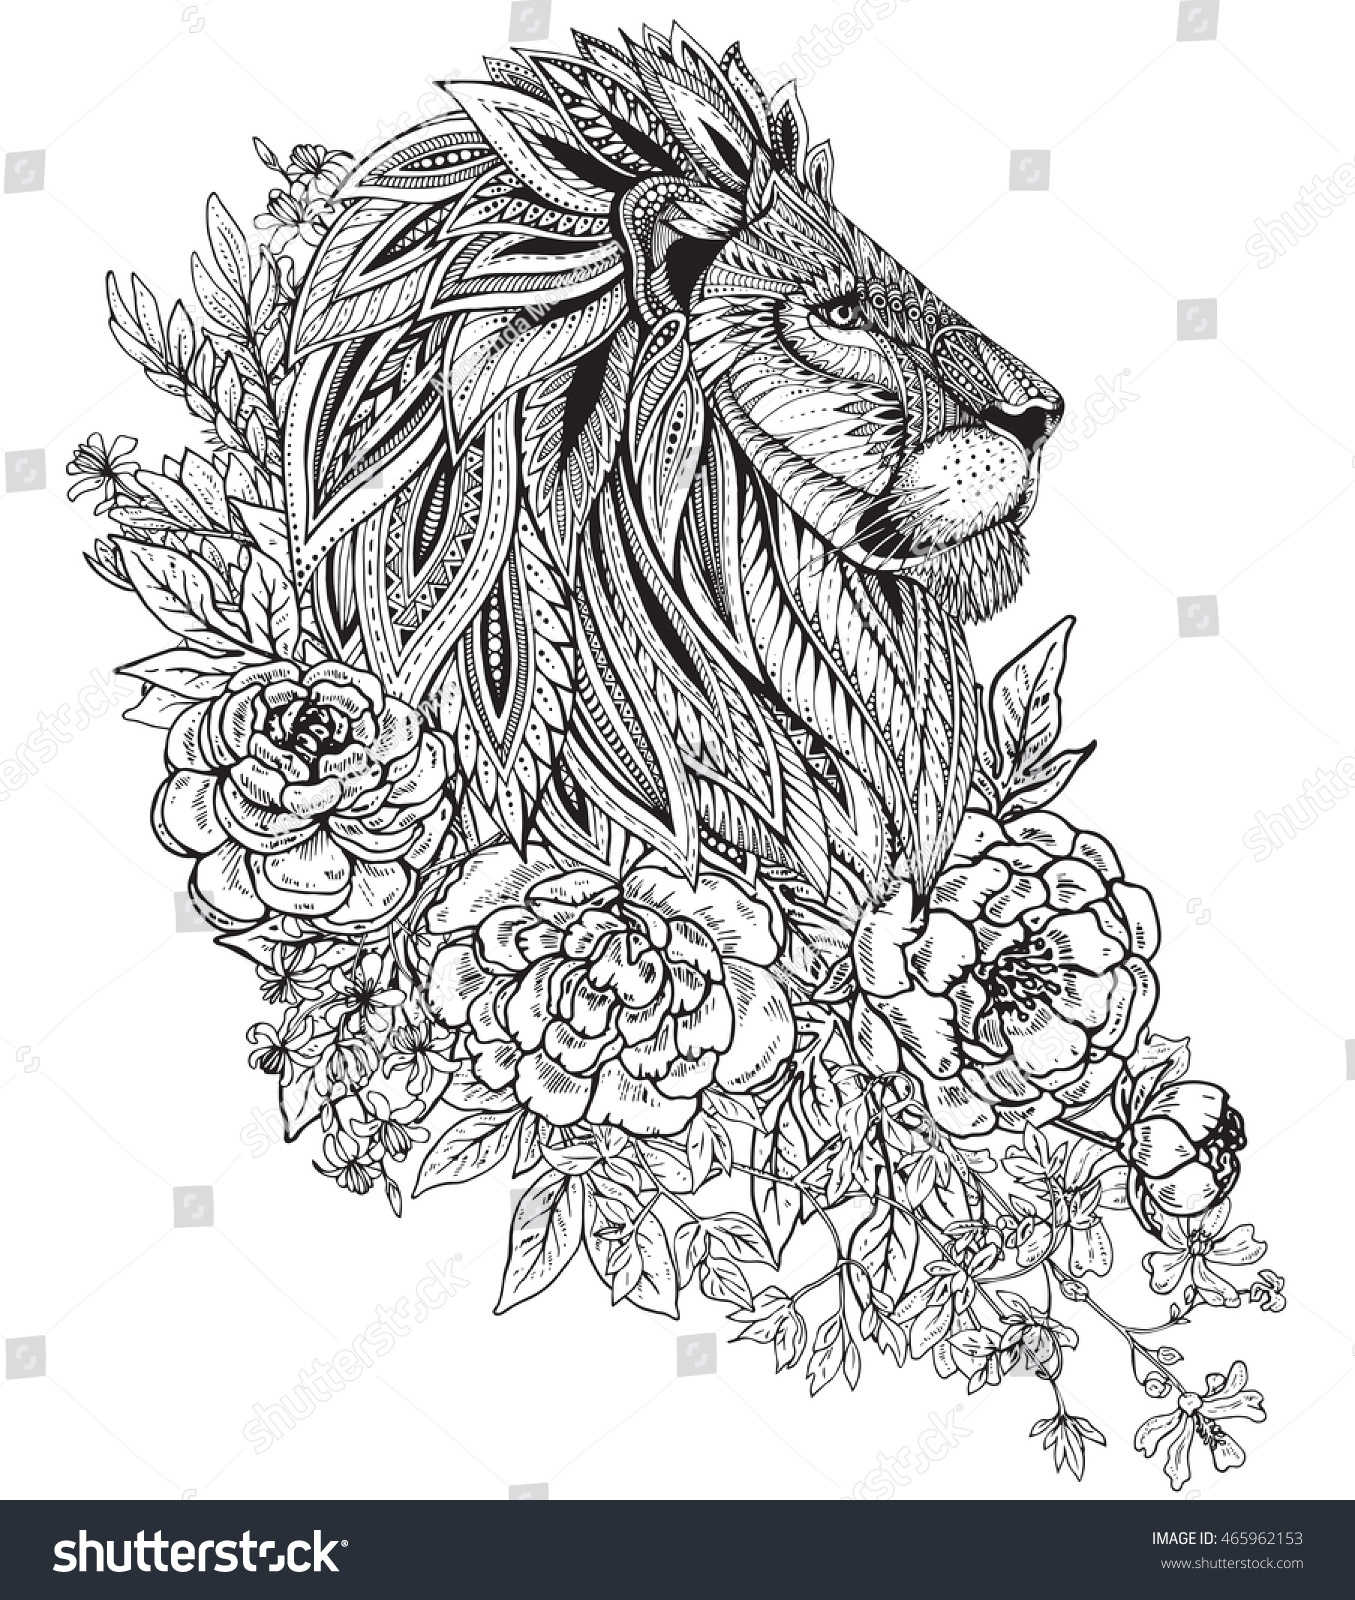 Hand Drawn Graphic Ornate Head Lion Stock Vector 465962153